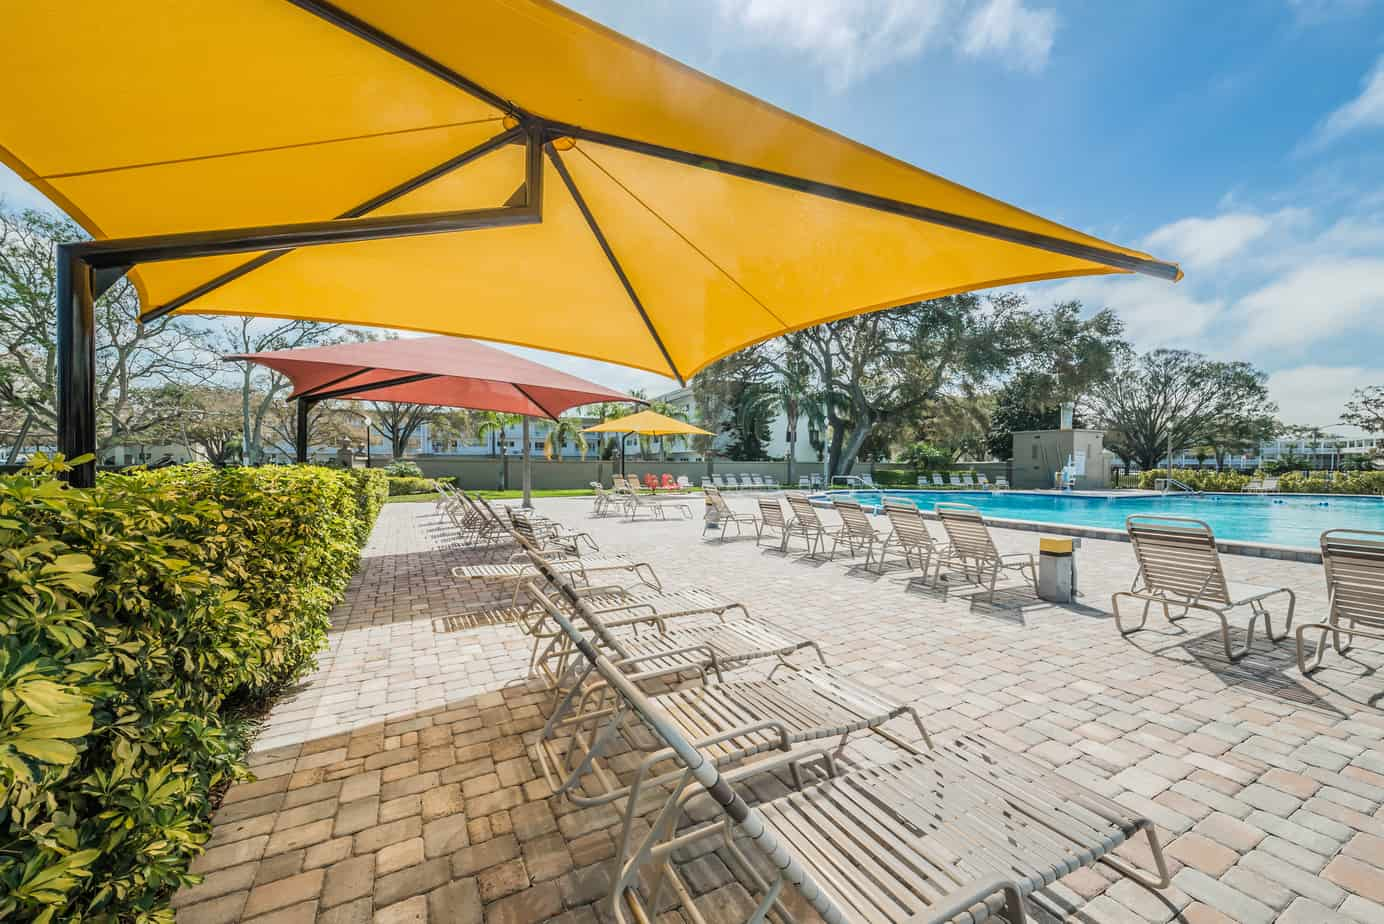 29-2285-Israeli-Dr-#17-Clearwater-Fl-33763-Patio1-3